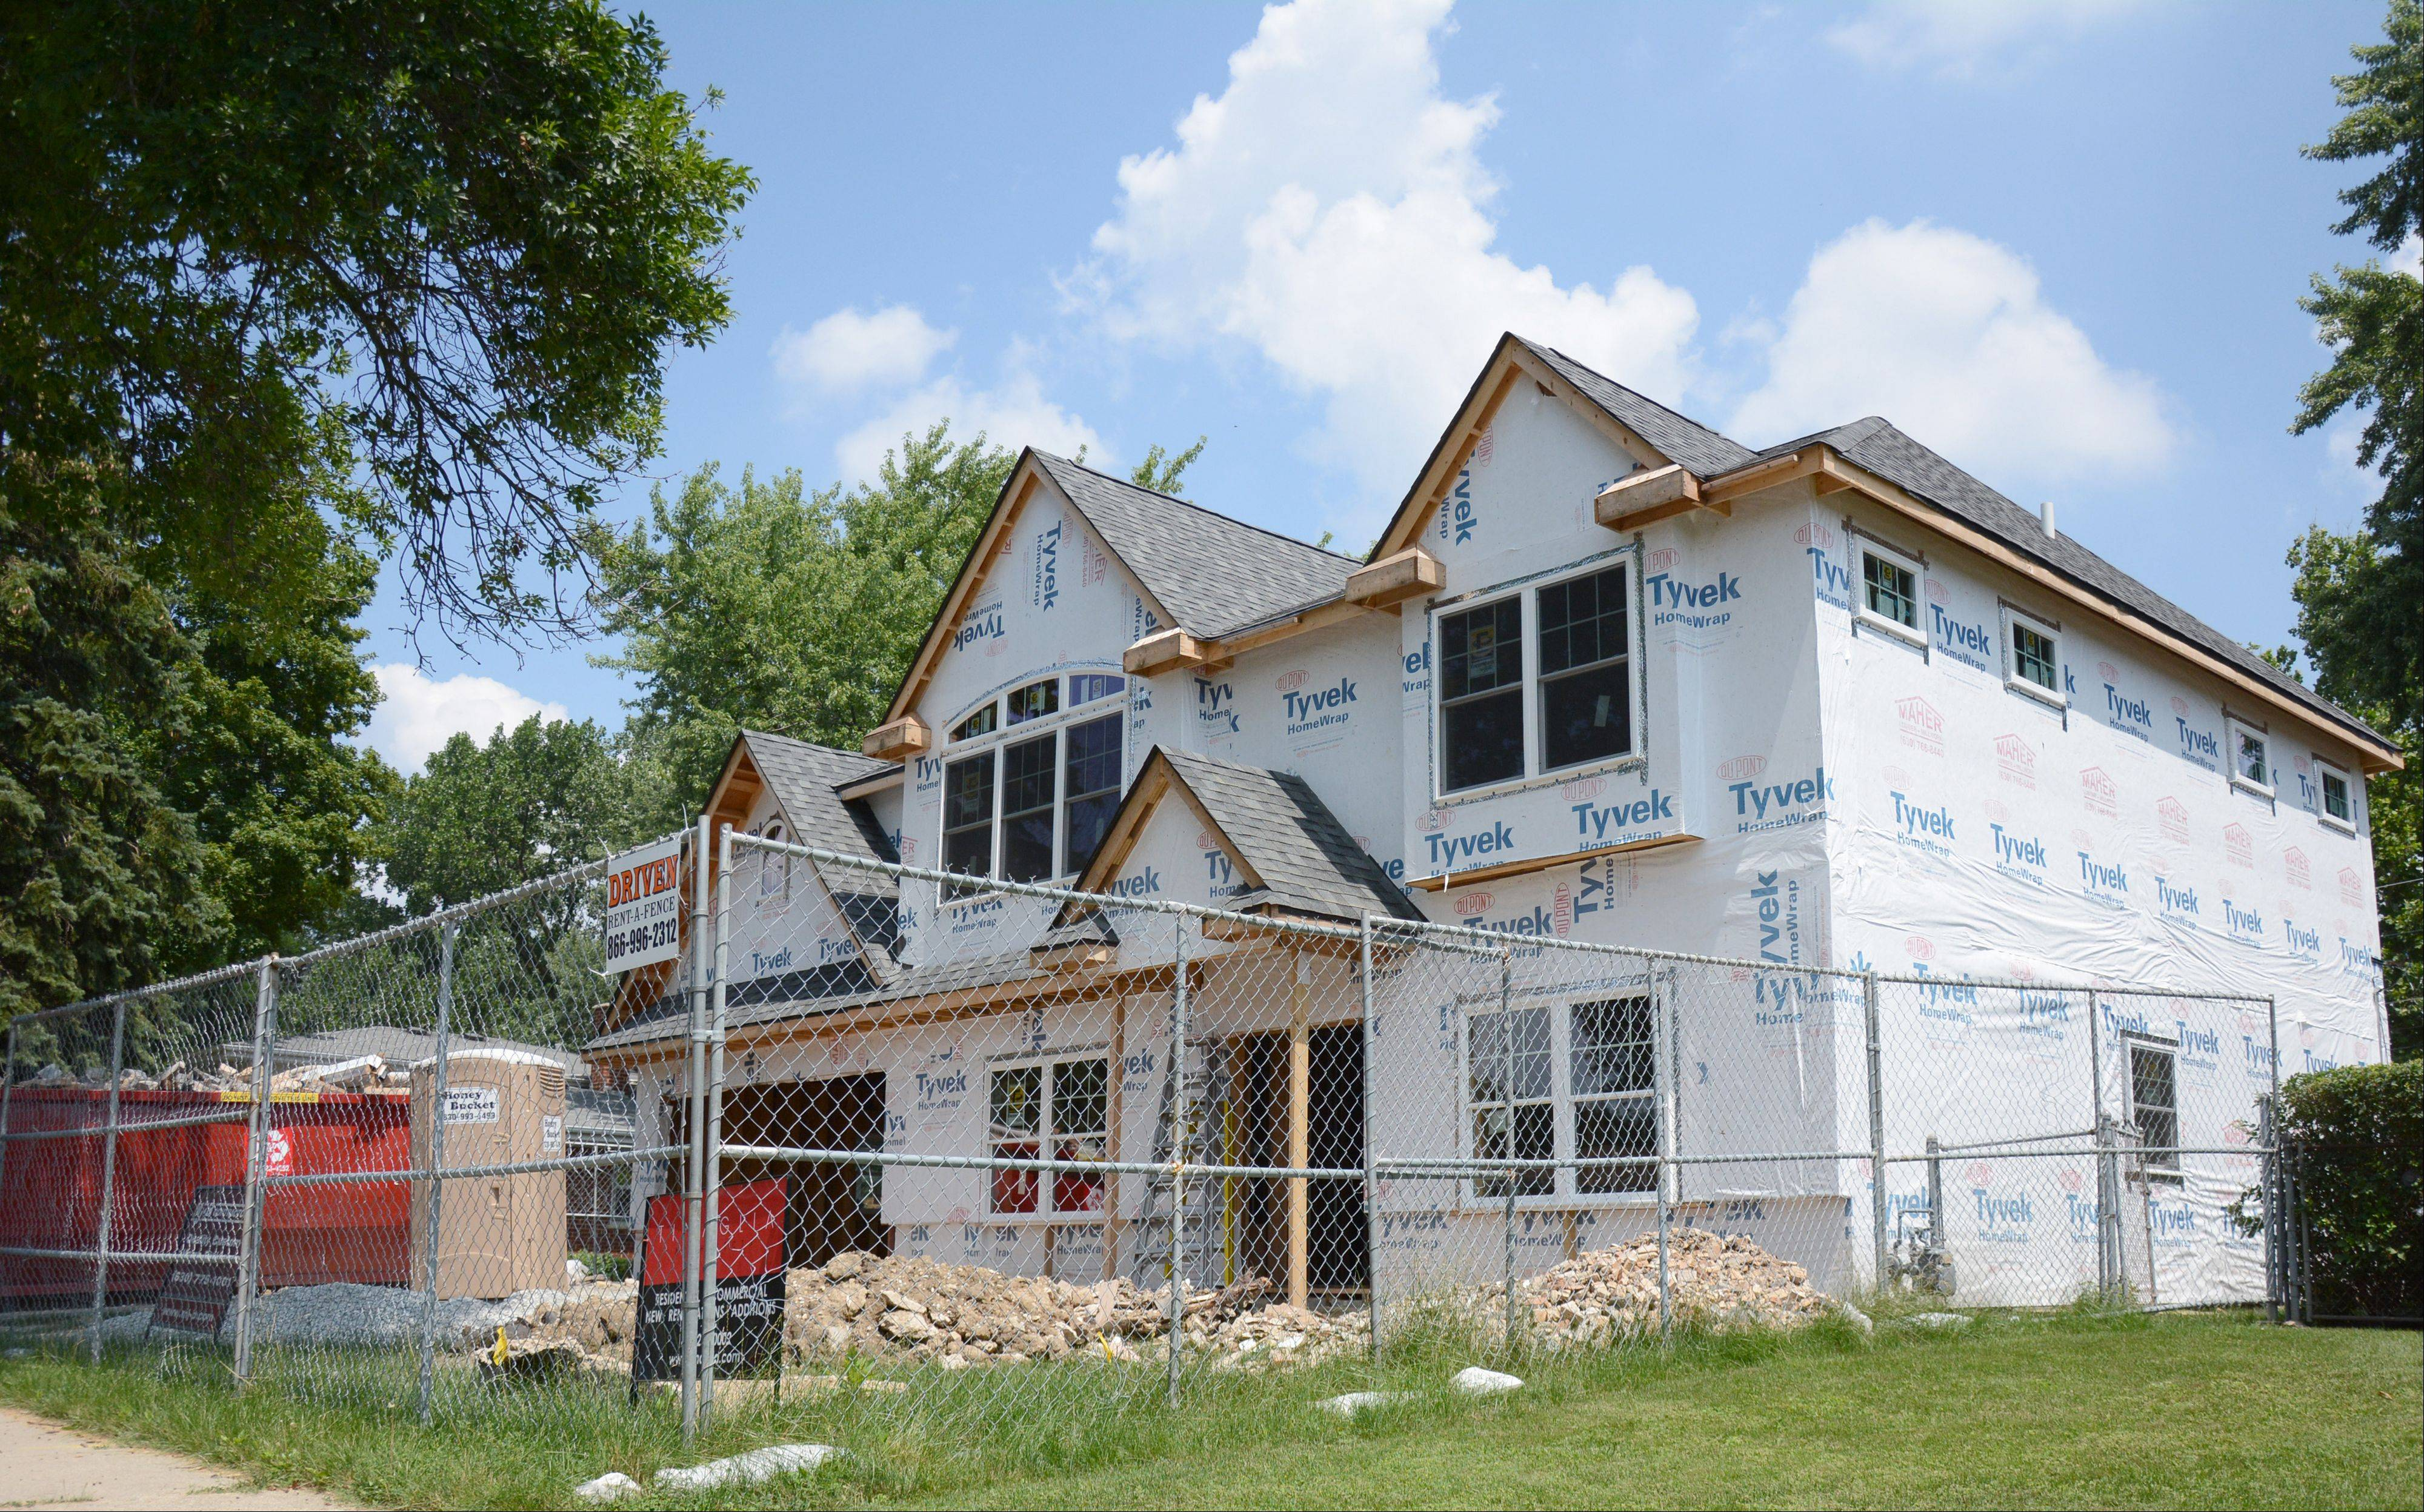 A new home is under construction at 1007 N. Wilshire Lane in Arlington Heights.